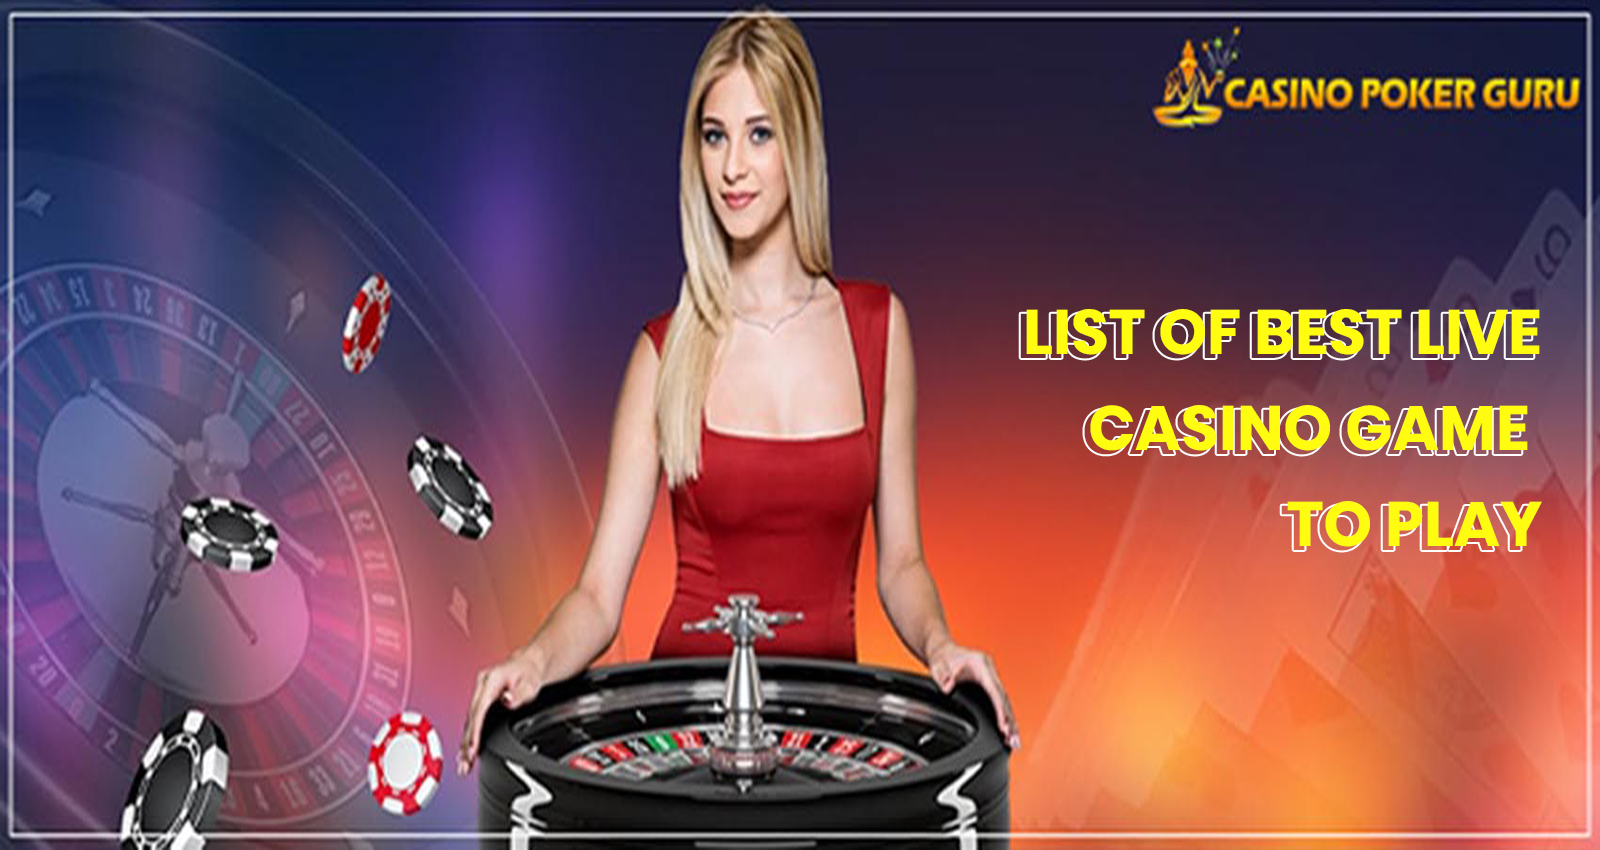 List of Best live Casino Game to Play